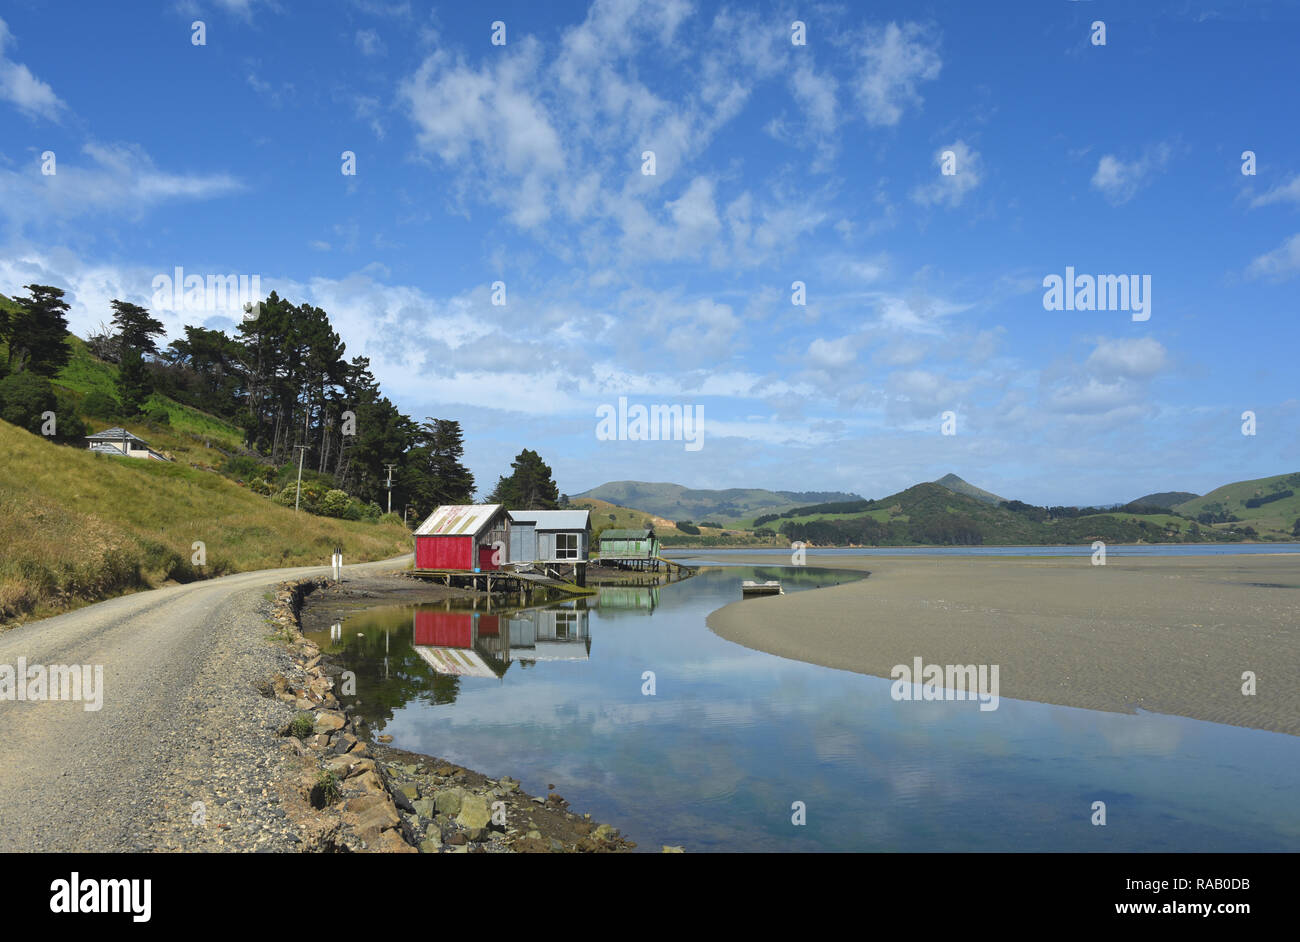 Amazing reflections of colorful ancient boat houses on the Otago peninsula of the South island of New Zealand. - Stock Image